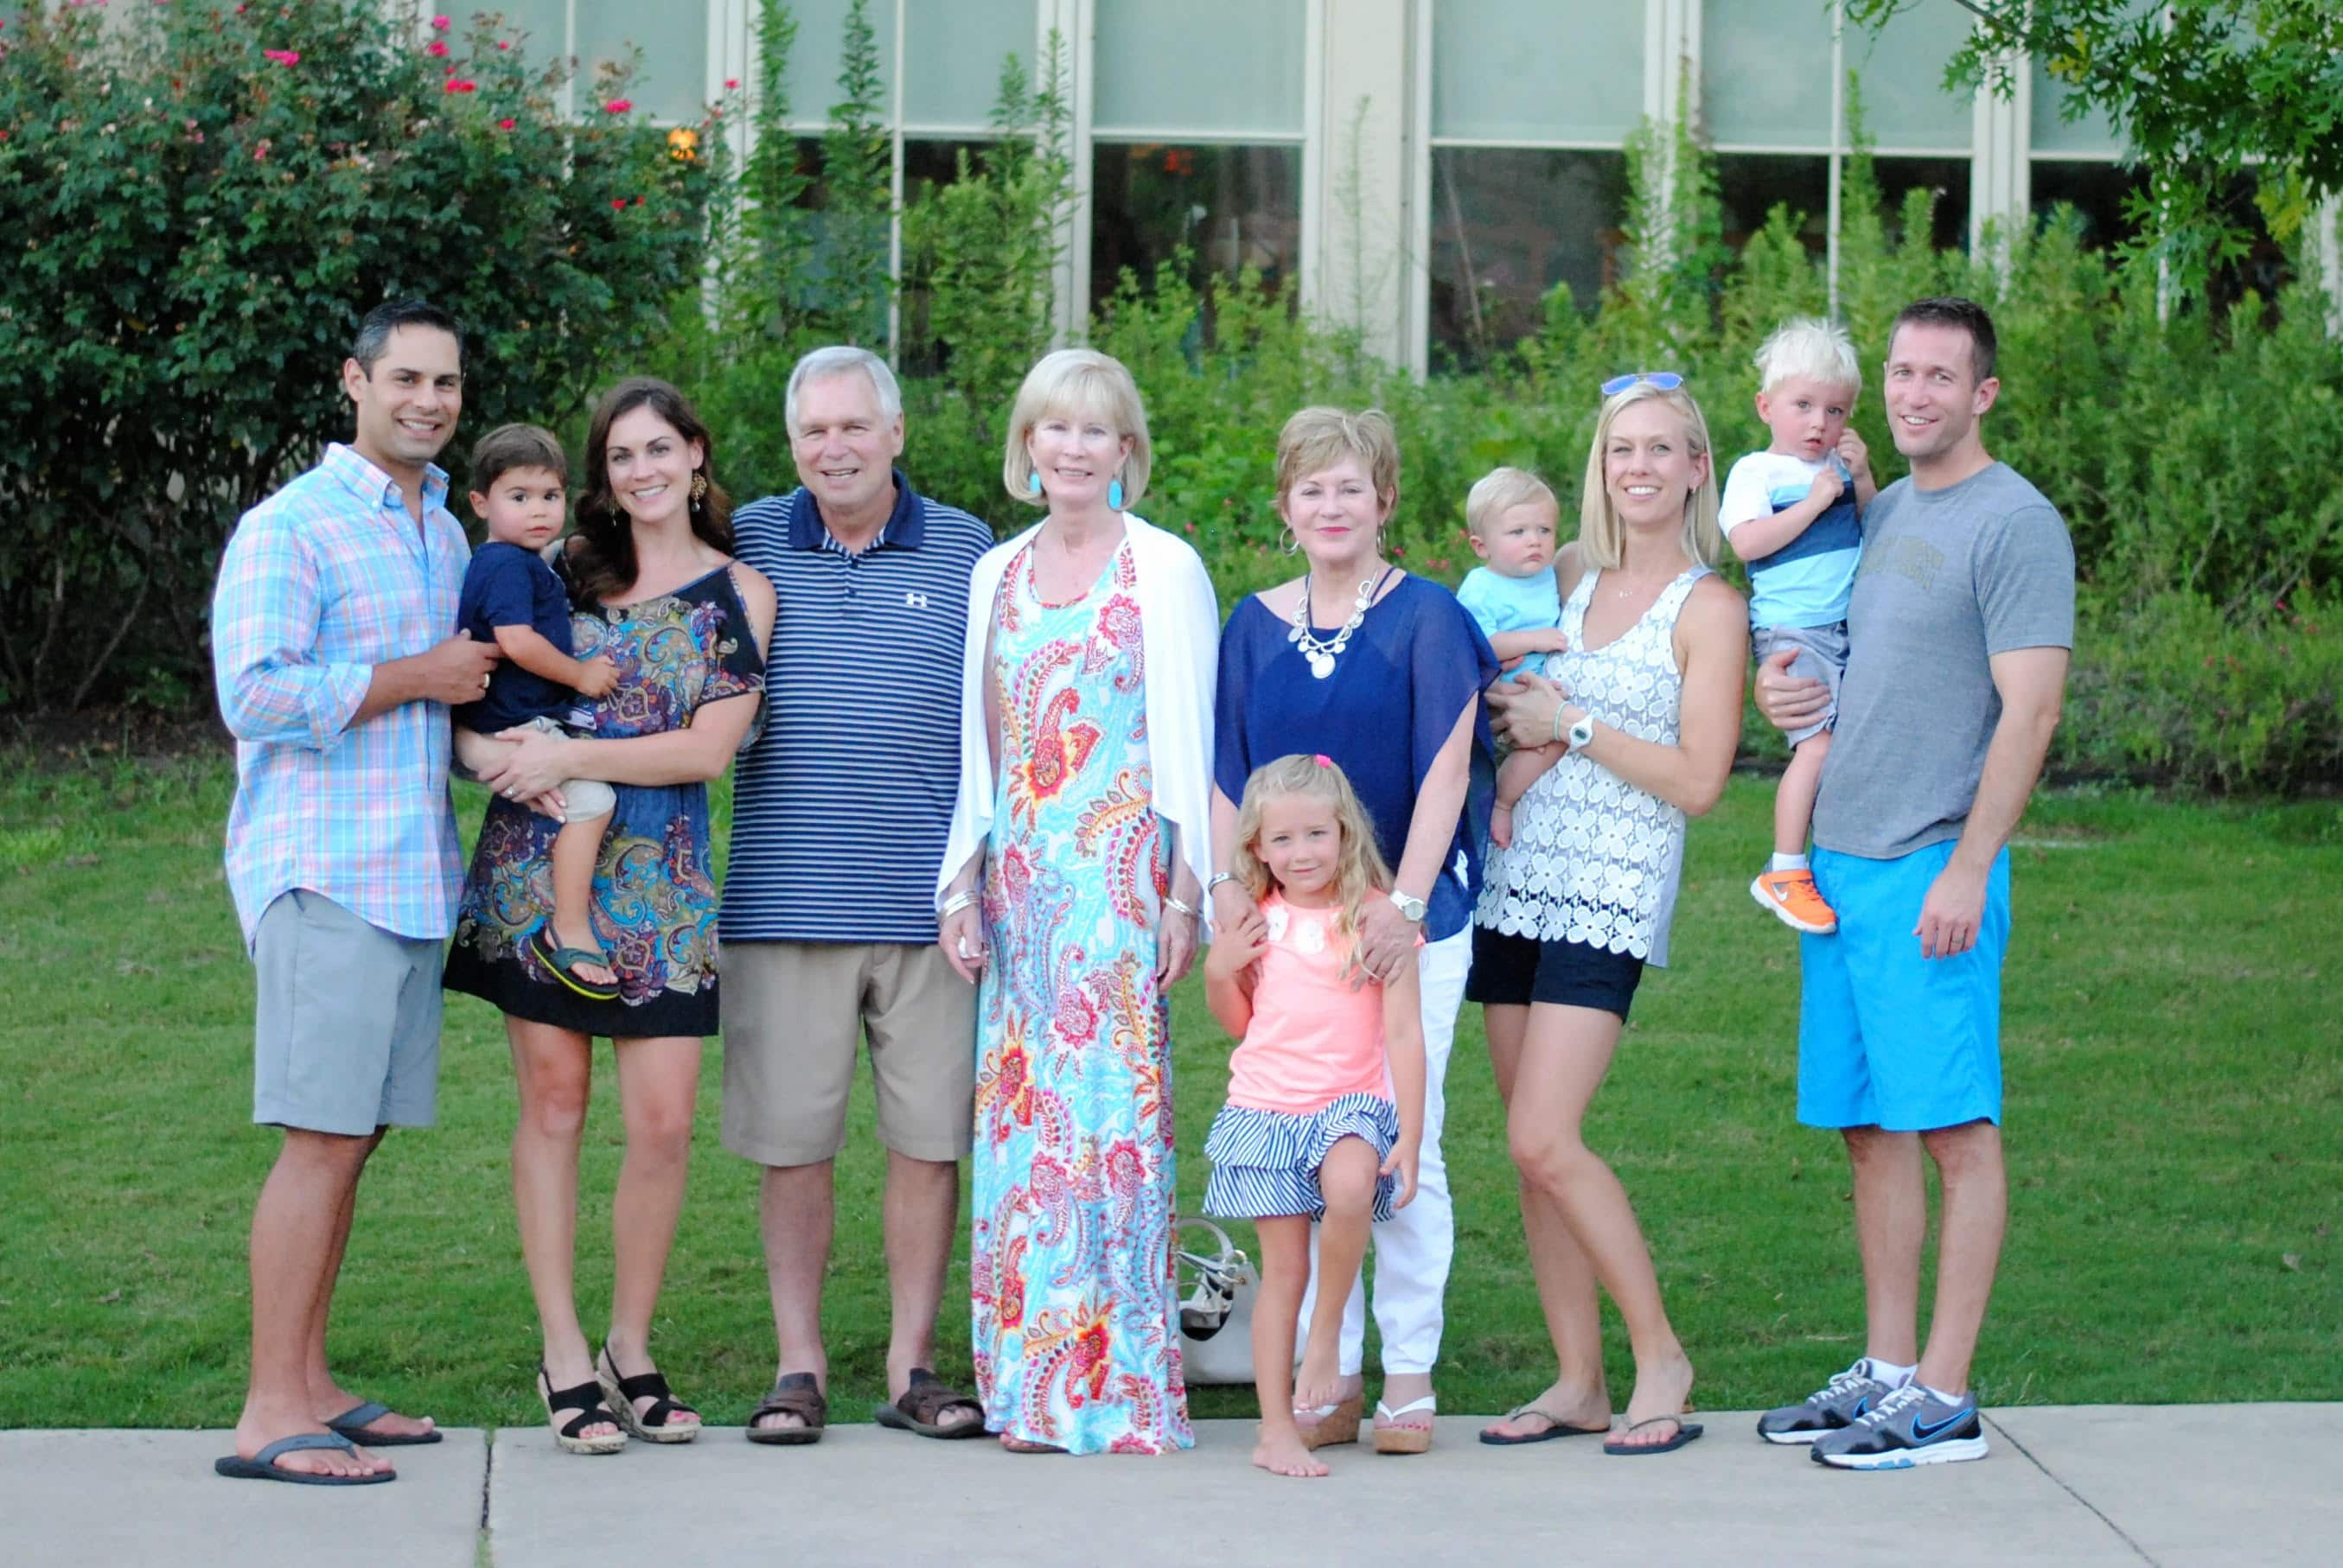 Bethany with her family at the Hyatt Lost Pines in Bastrop.